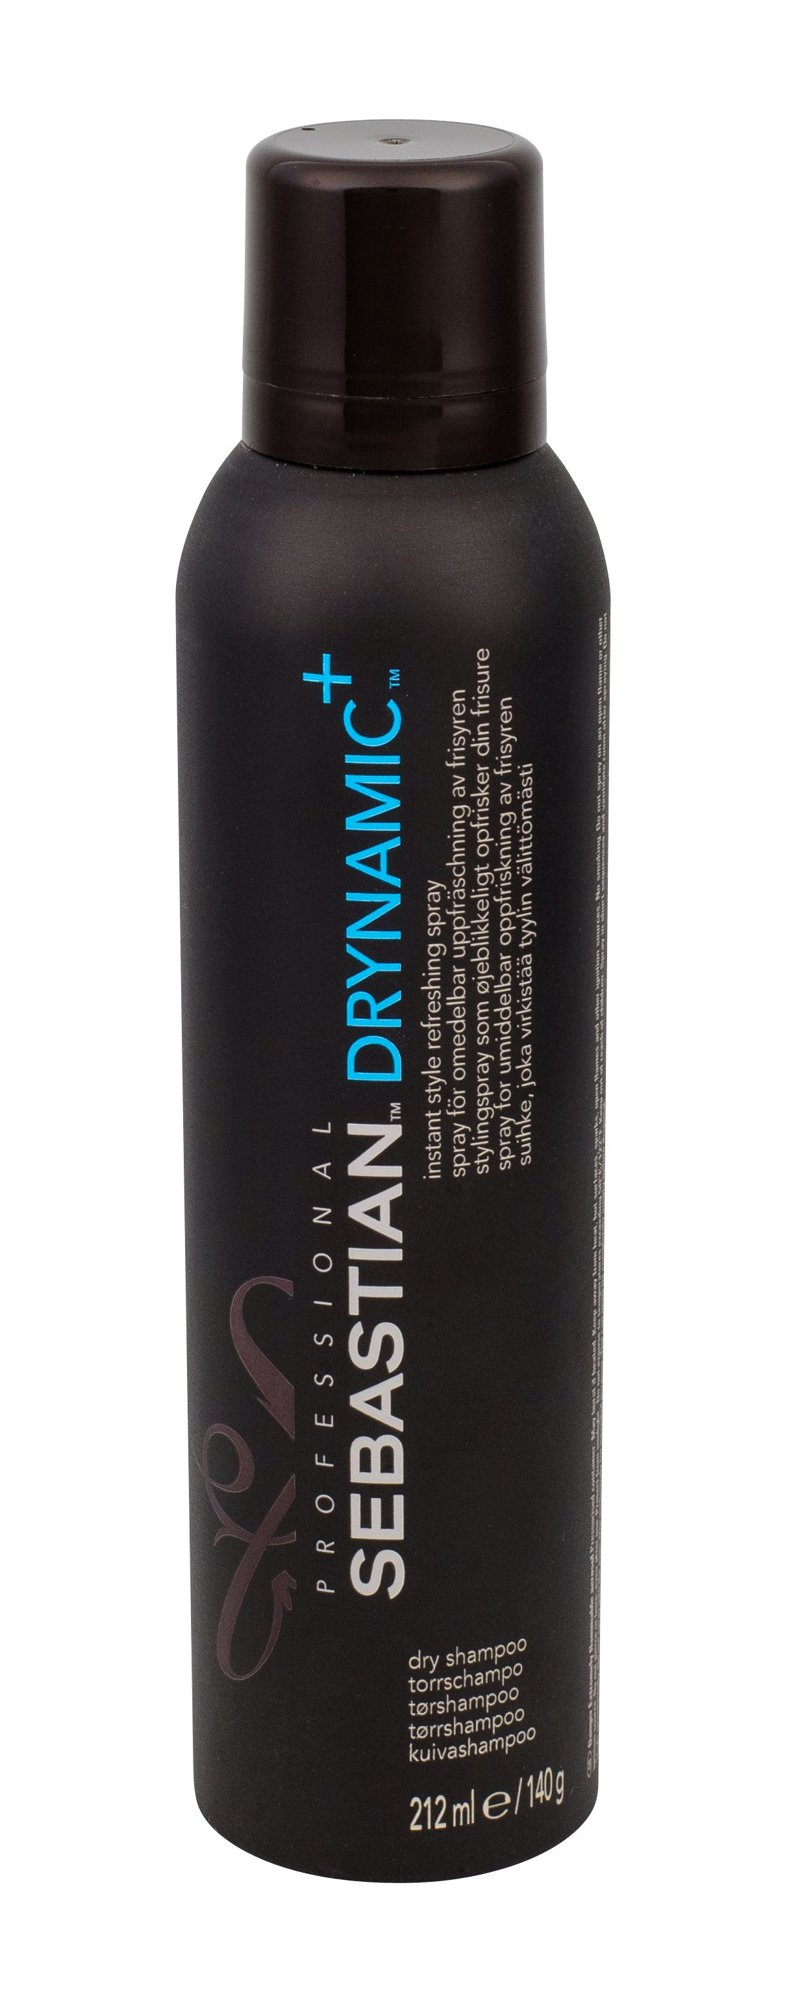 Sebastian Professional Drynamic Cosmetic 212ml